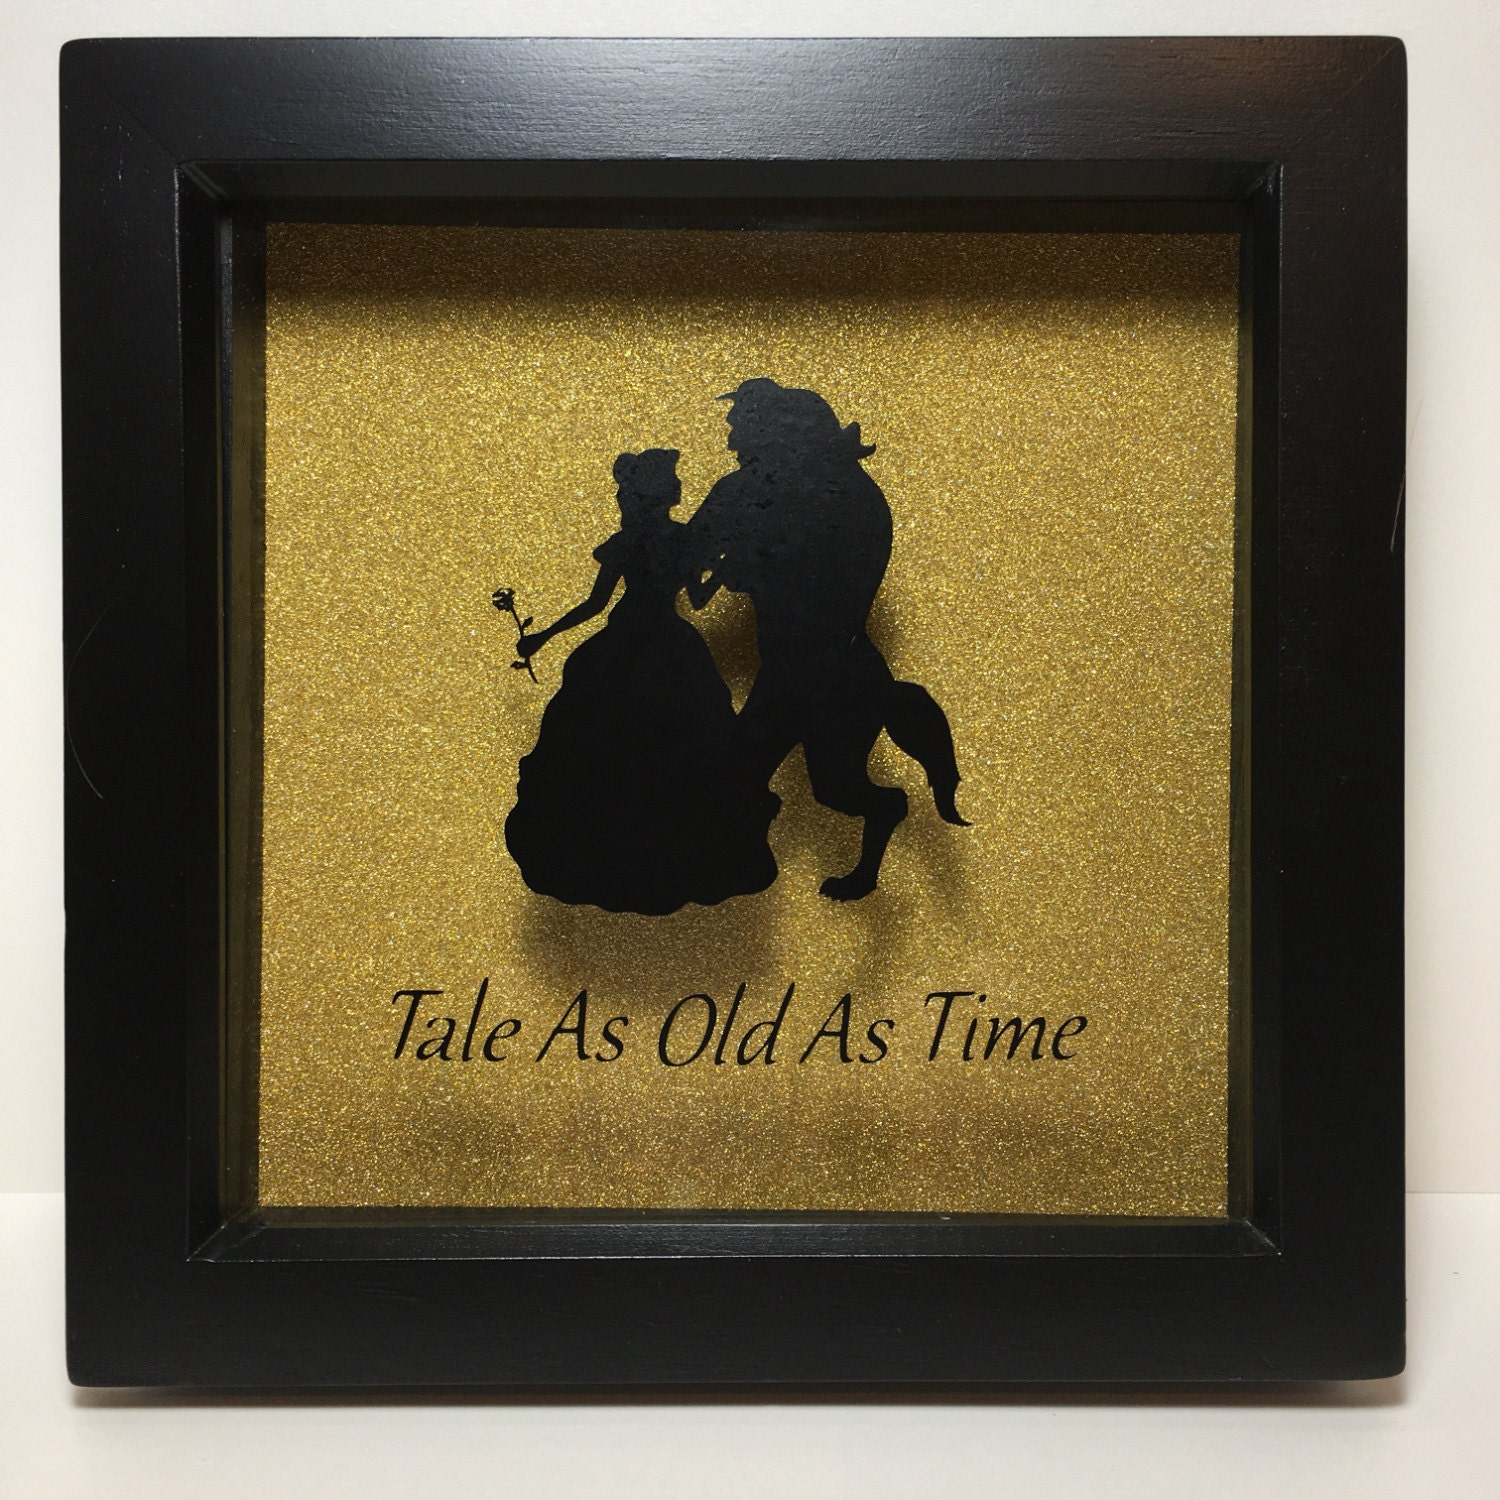 beauty and the beast inspired silhouette box frame